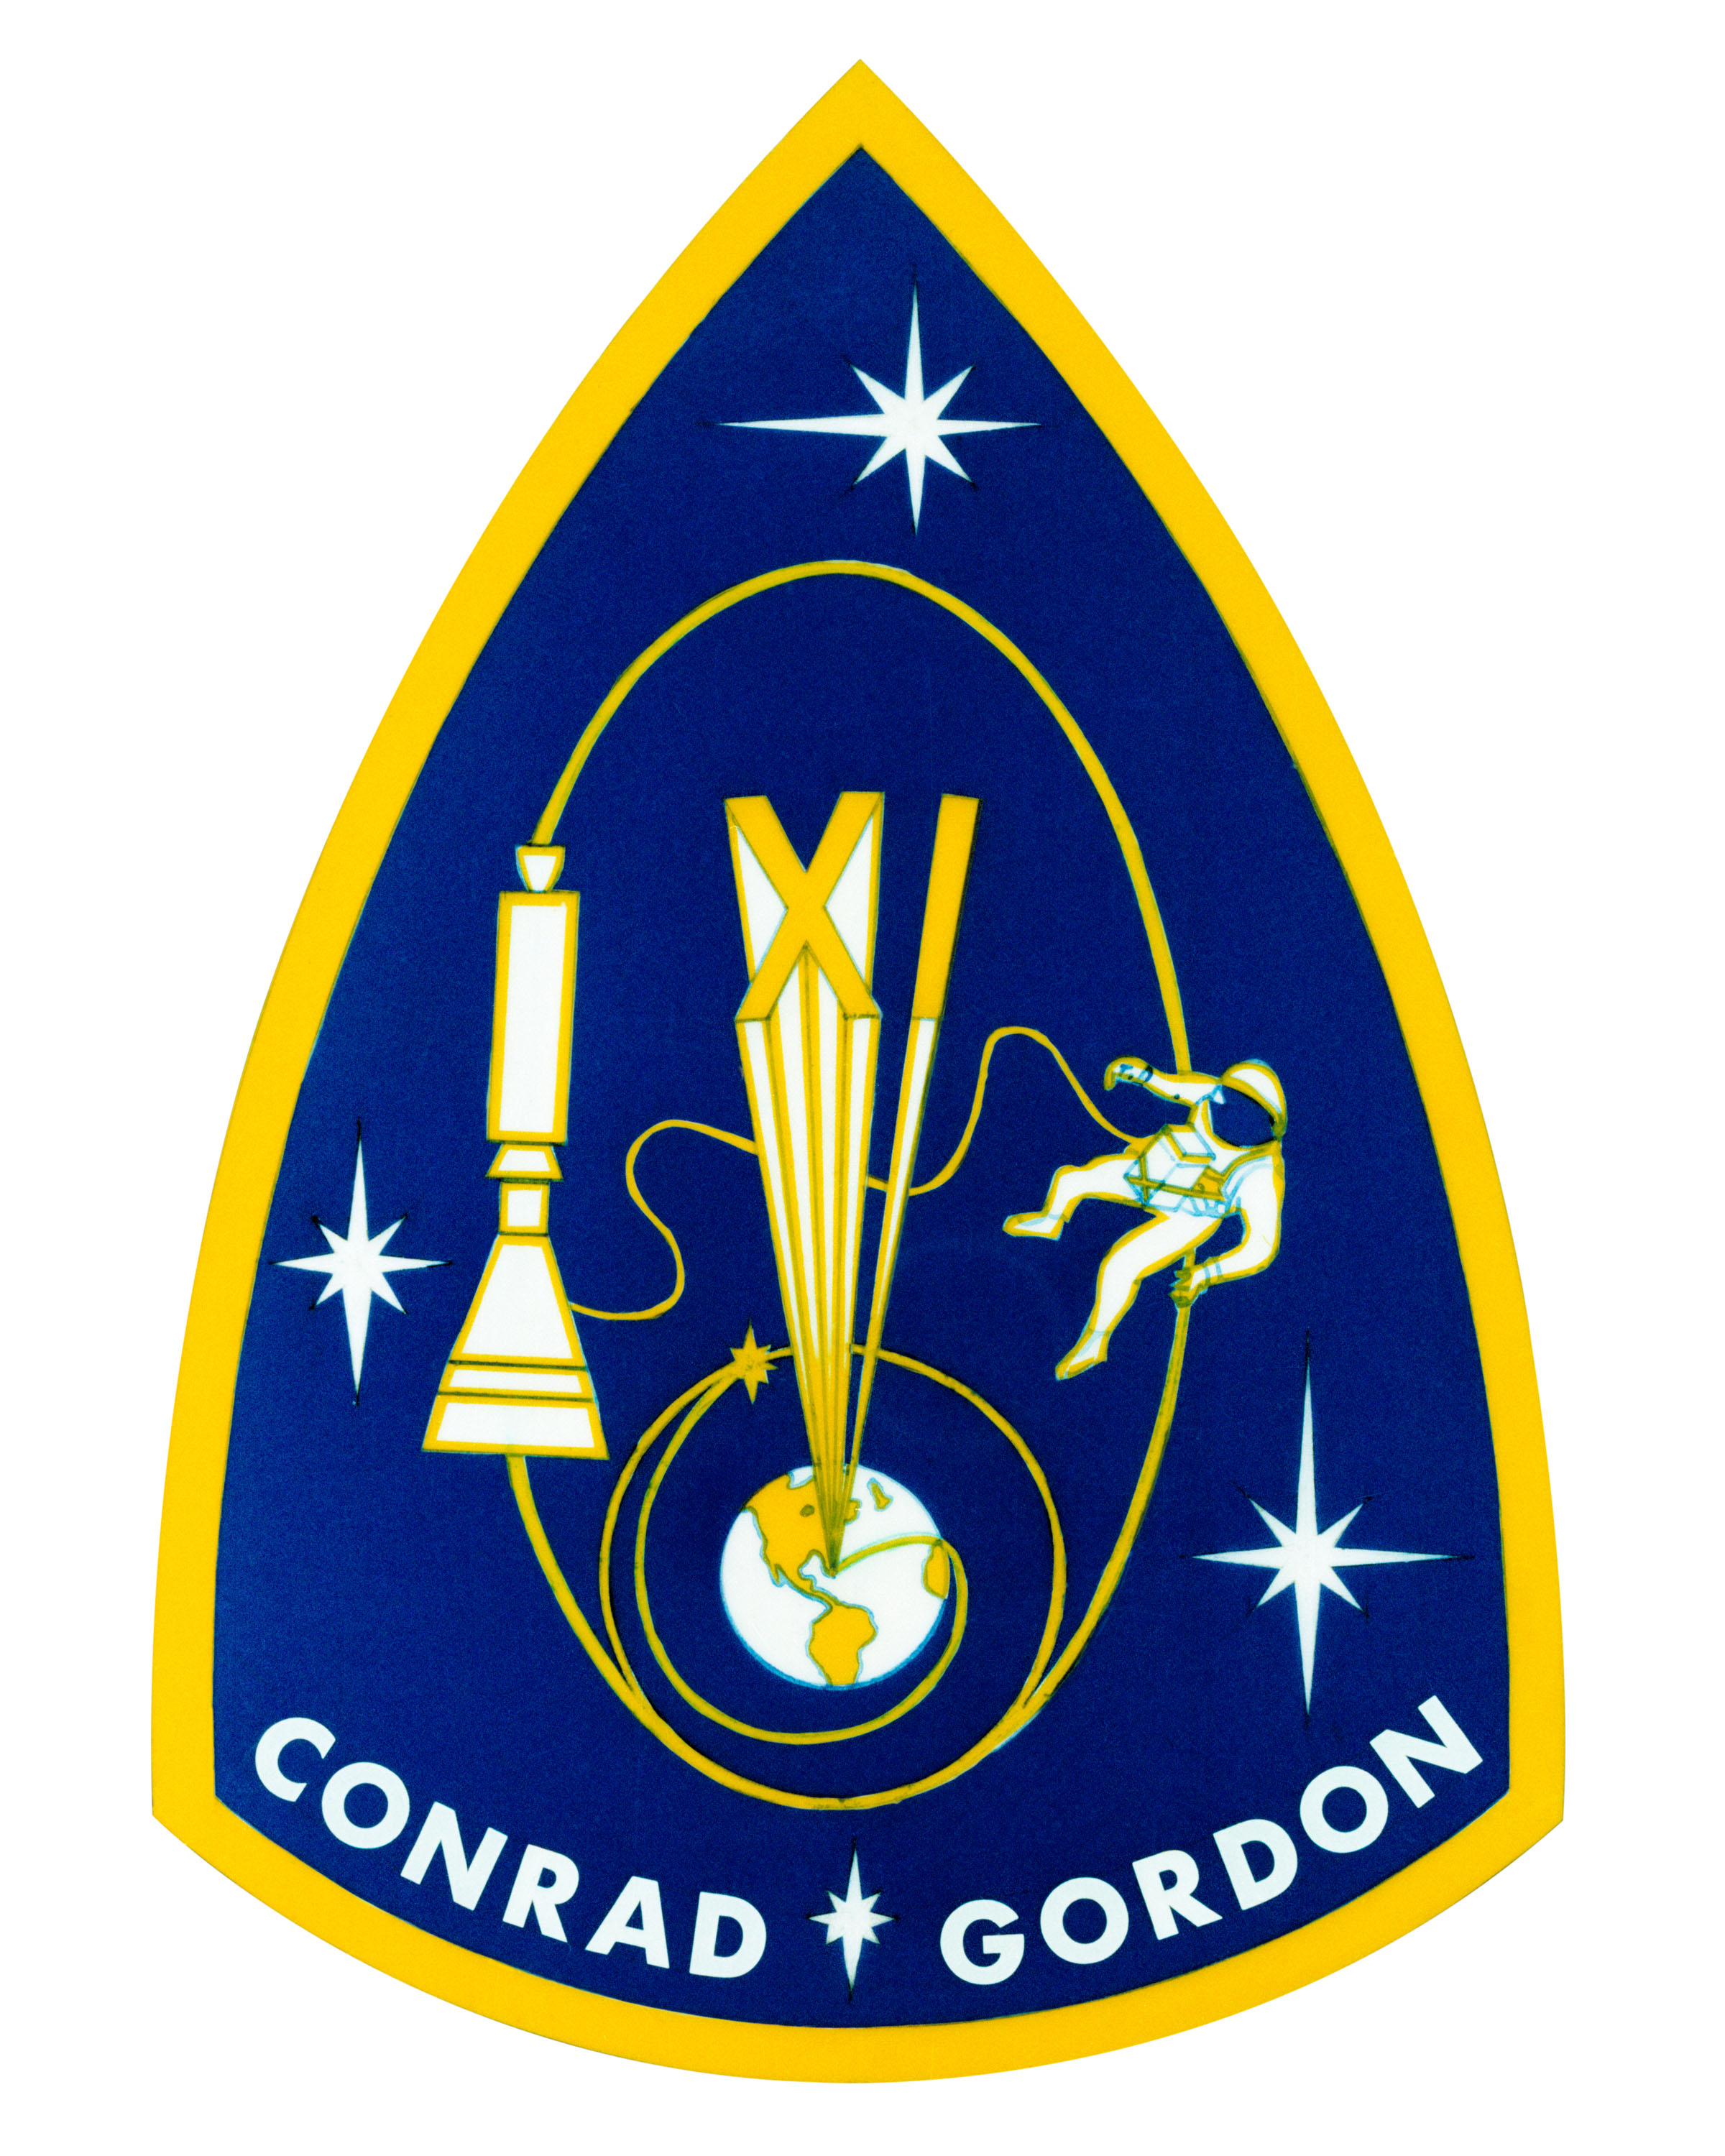 gemini space mission badges - photo #5